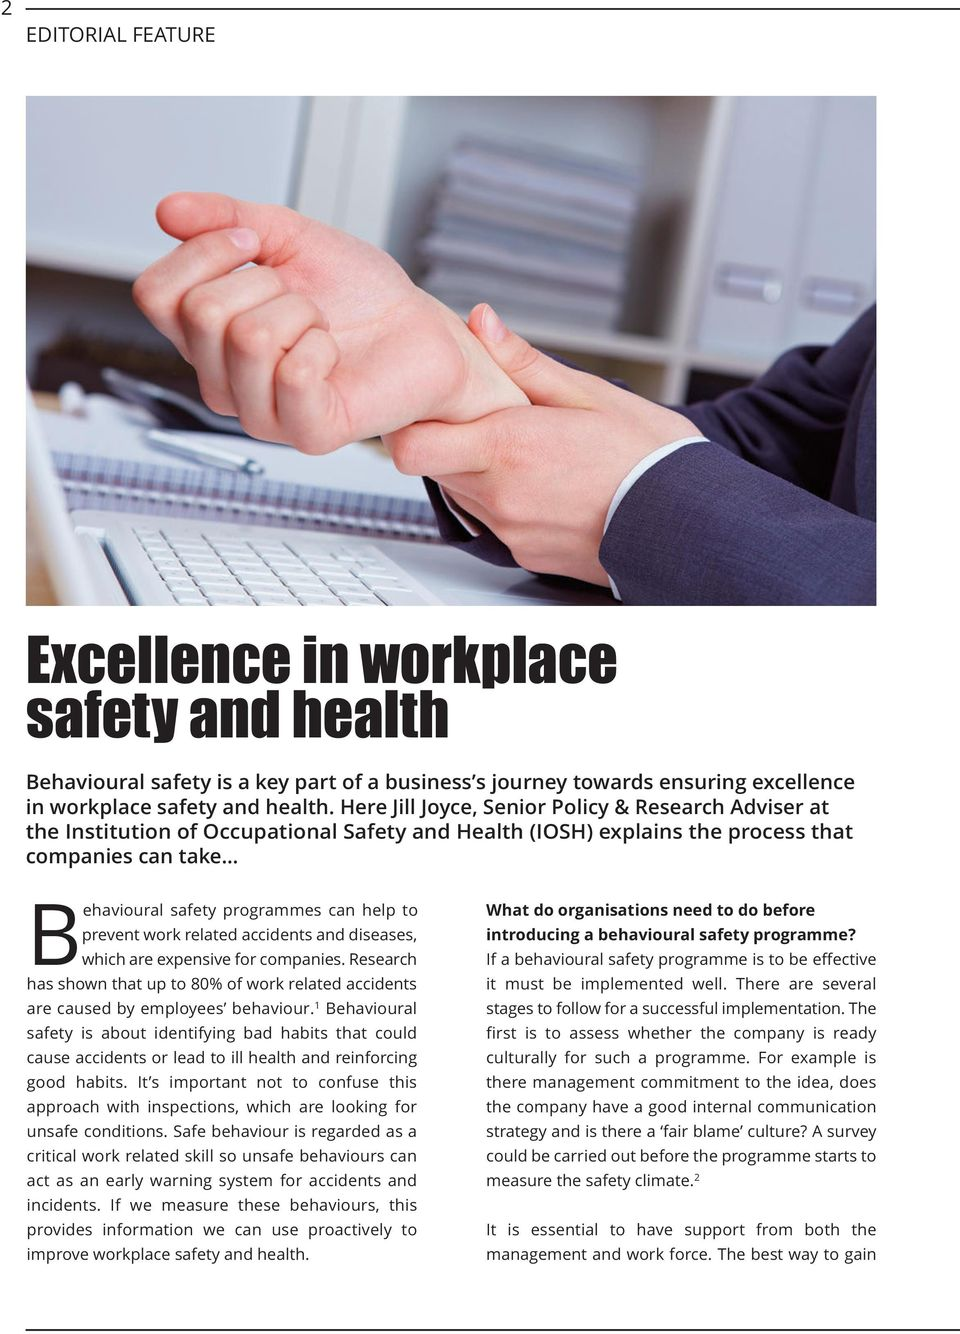 prevent work related accidents and diseases, which are expensive for companies. Research has shown that up to 80% of work related accidents are caused by employees behaviour.